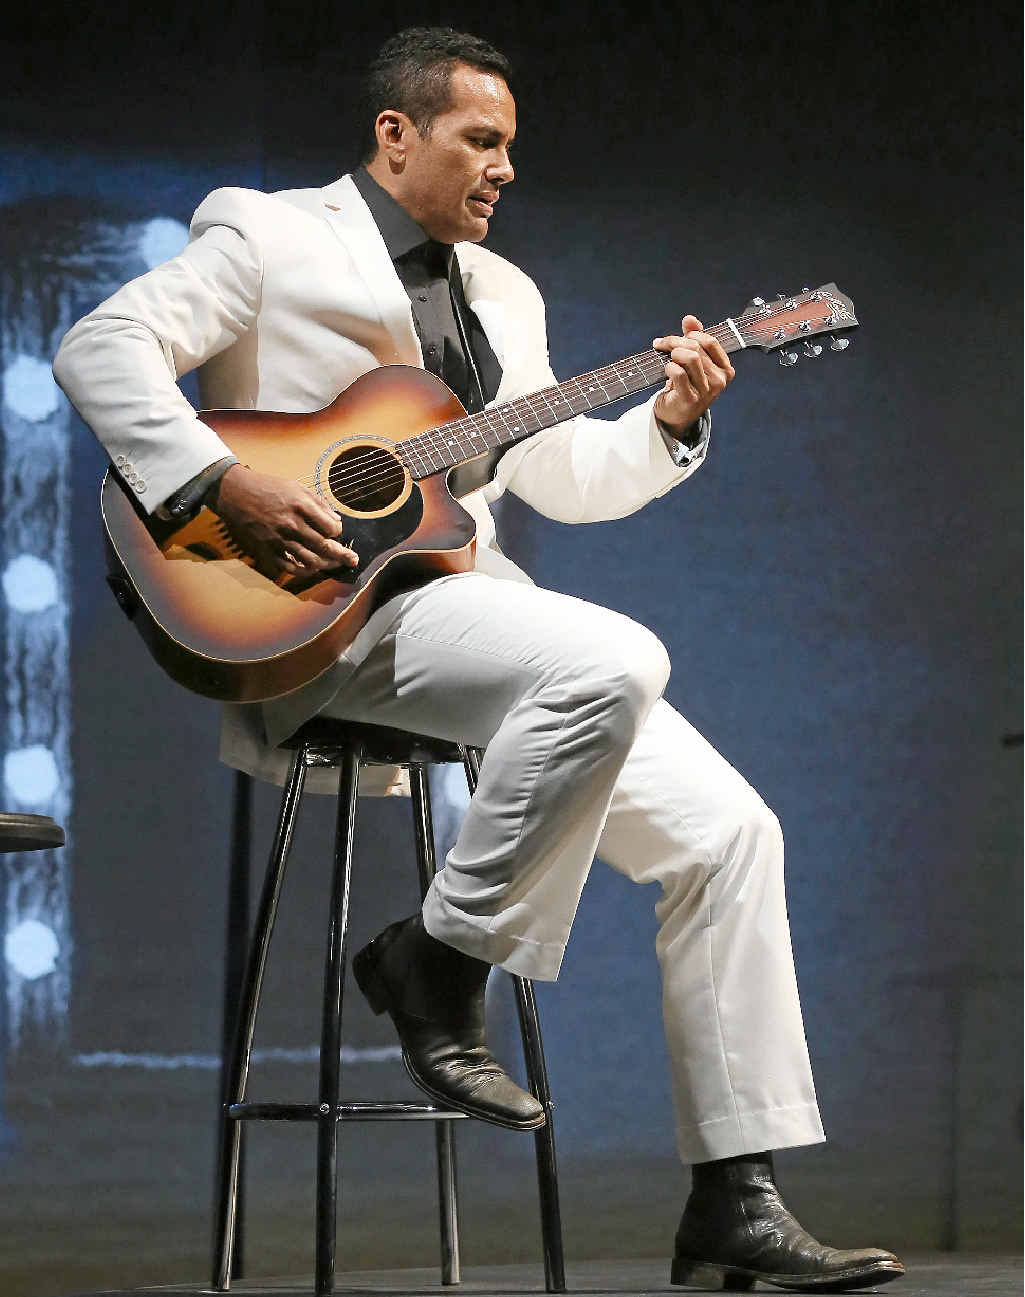 ON STAGE: Singer and actor Michael Tuahine as Jimmy Little in Country Song.